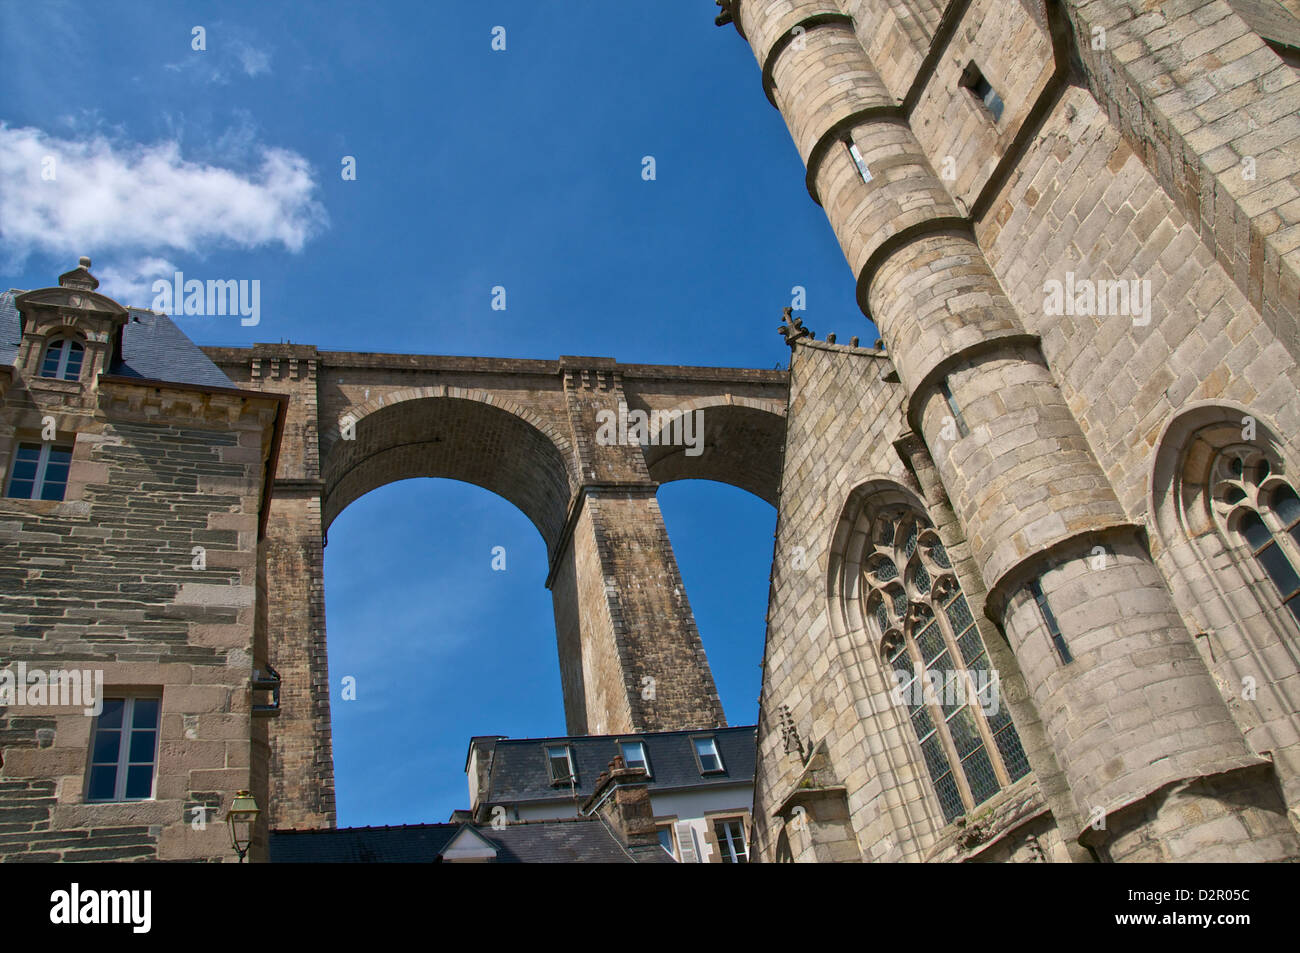 St. Melaine church dating from the 15th century, flamboyant gothic, and Viaduct, Morlaix, Finistere, Brittany, France, - Stock Image